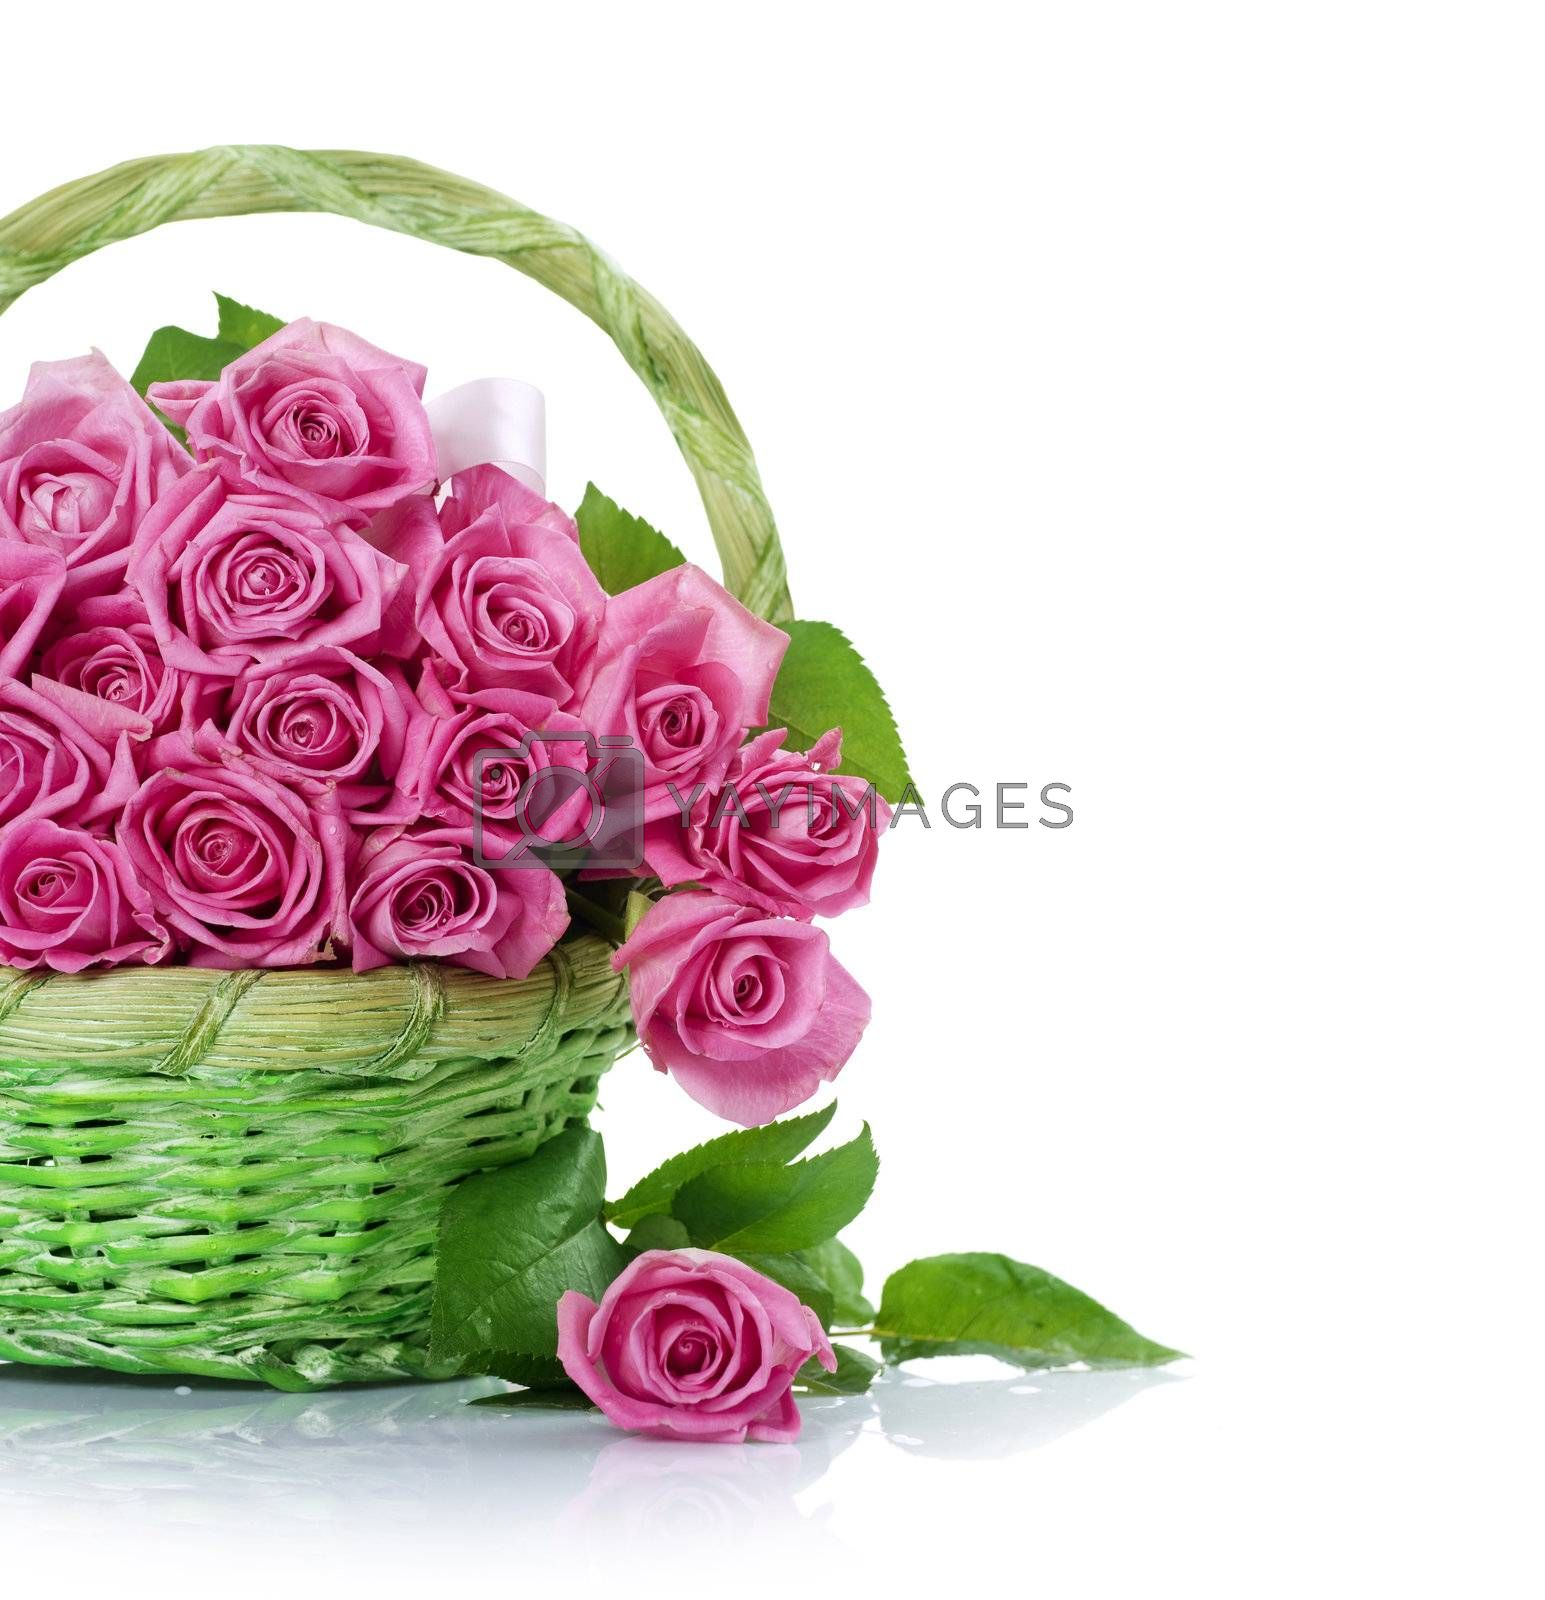 Roses in the Basket by Subbotina Anna